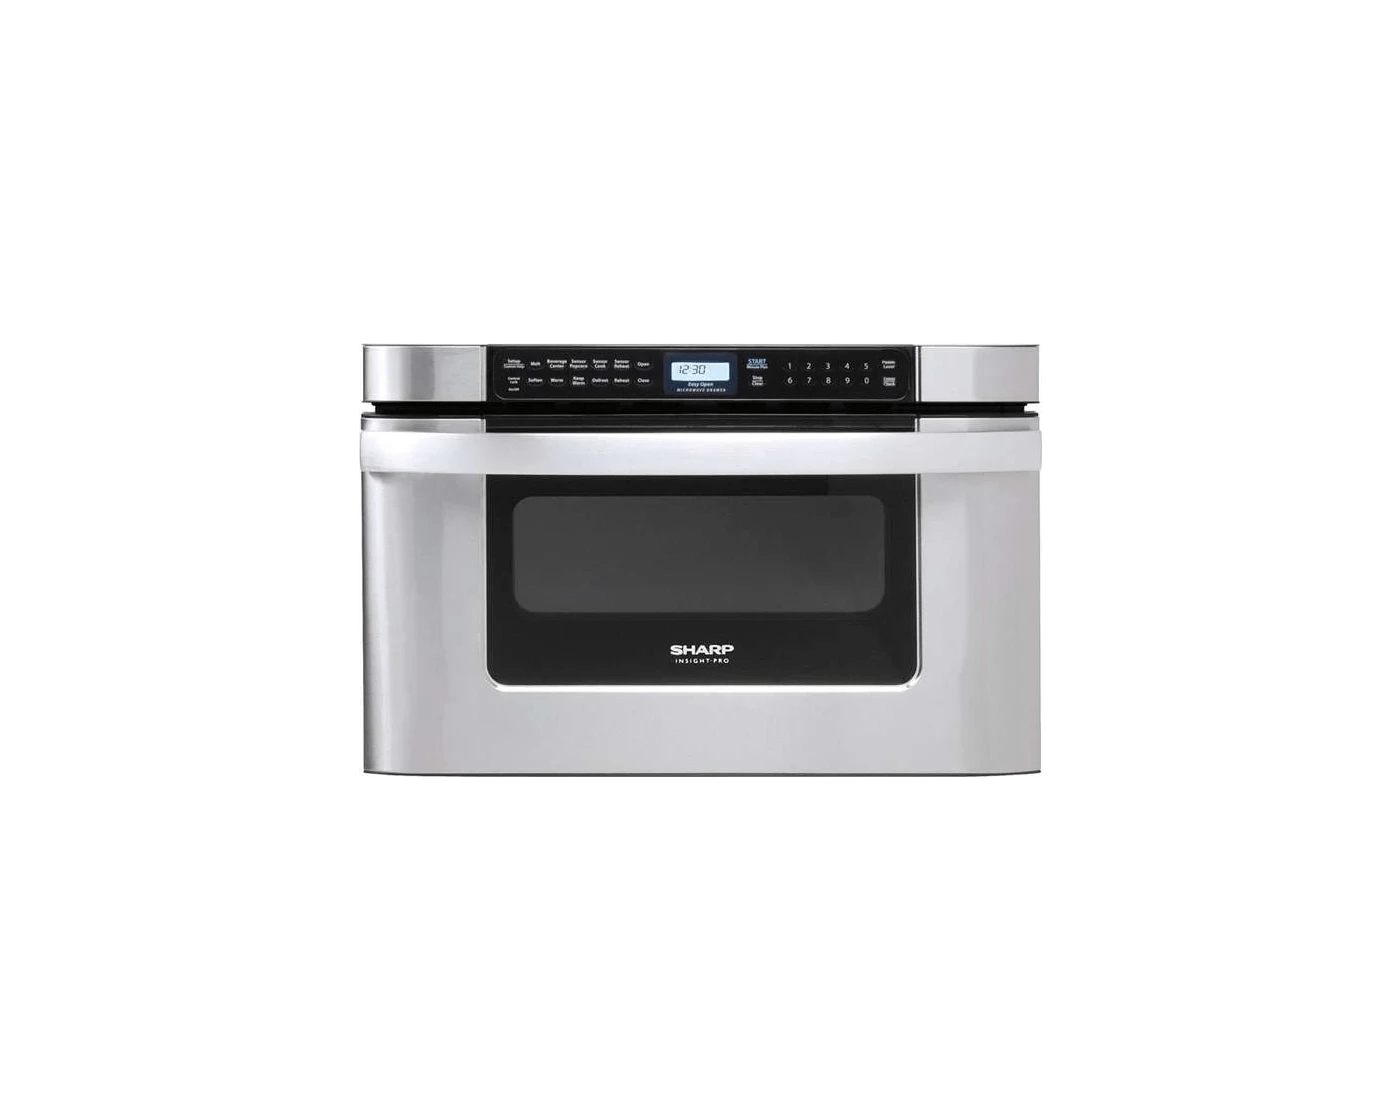 kb6524psy by sharp drawer microwaves goedekers com